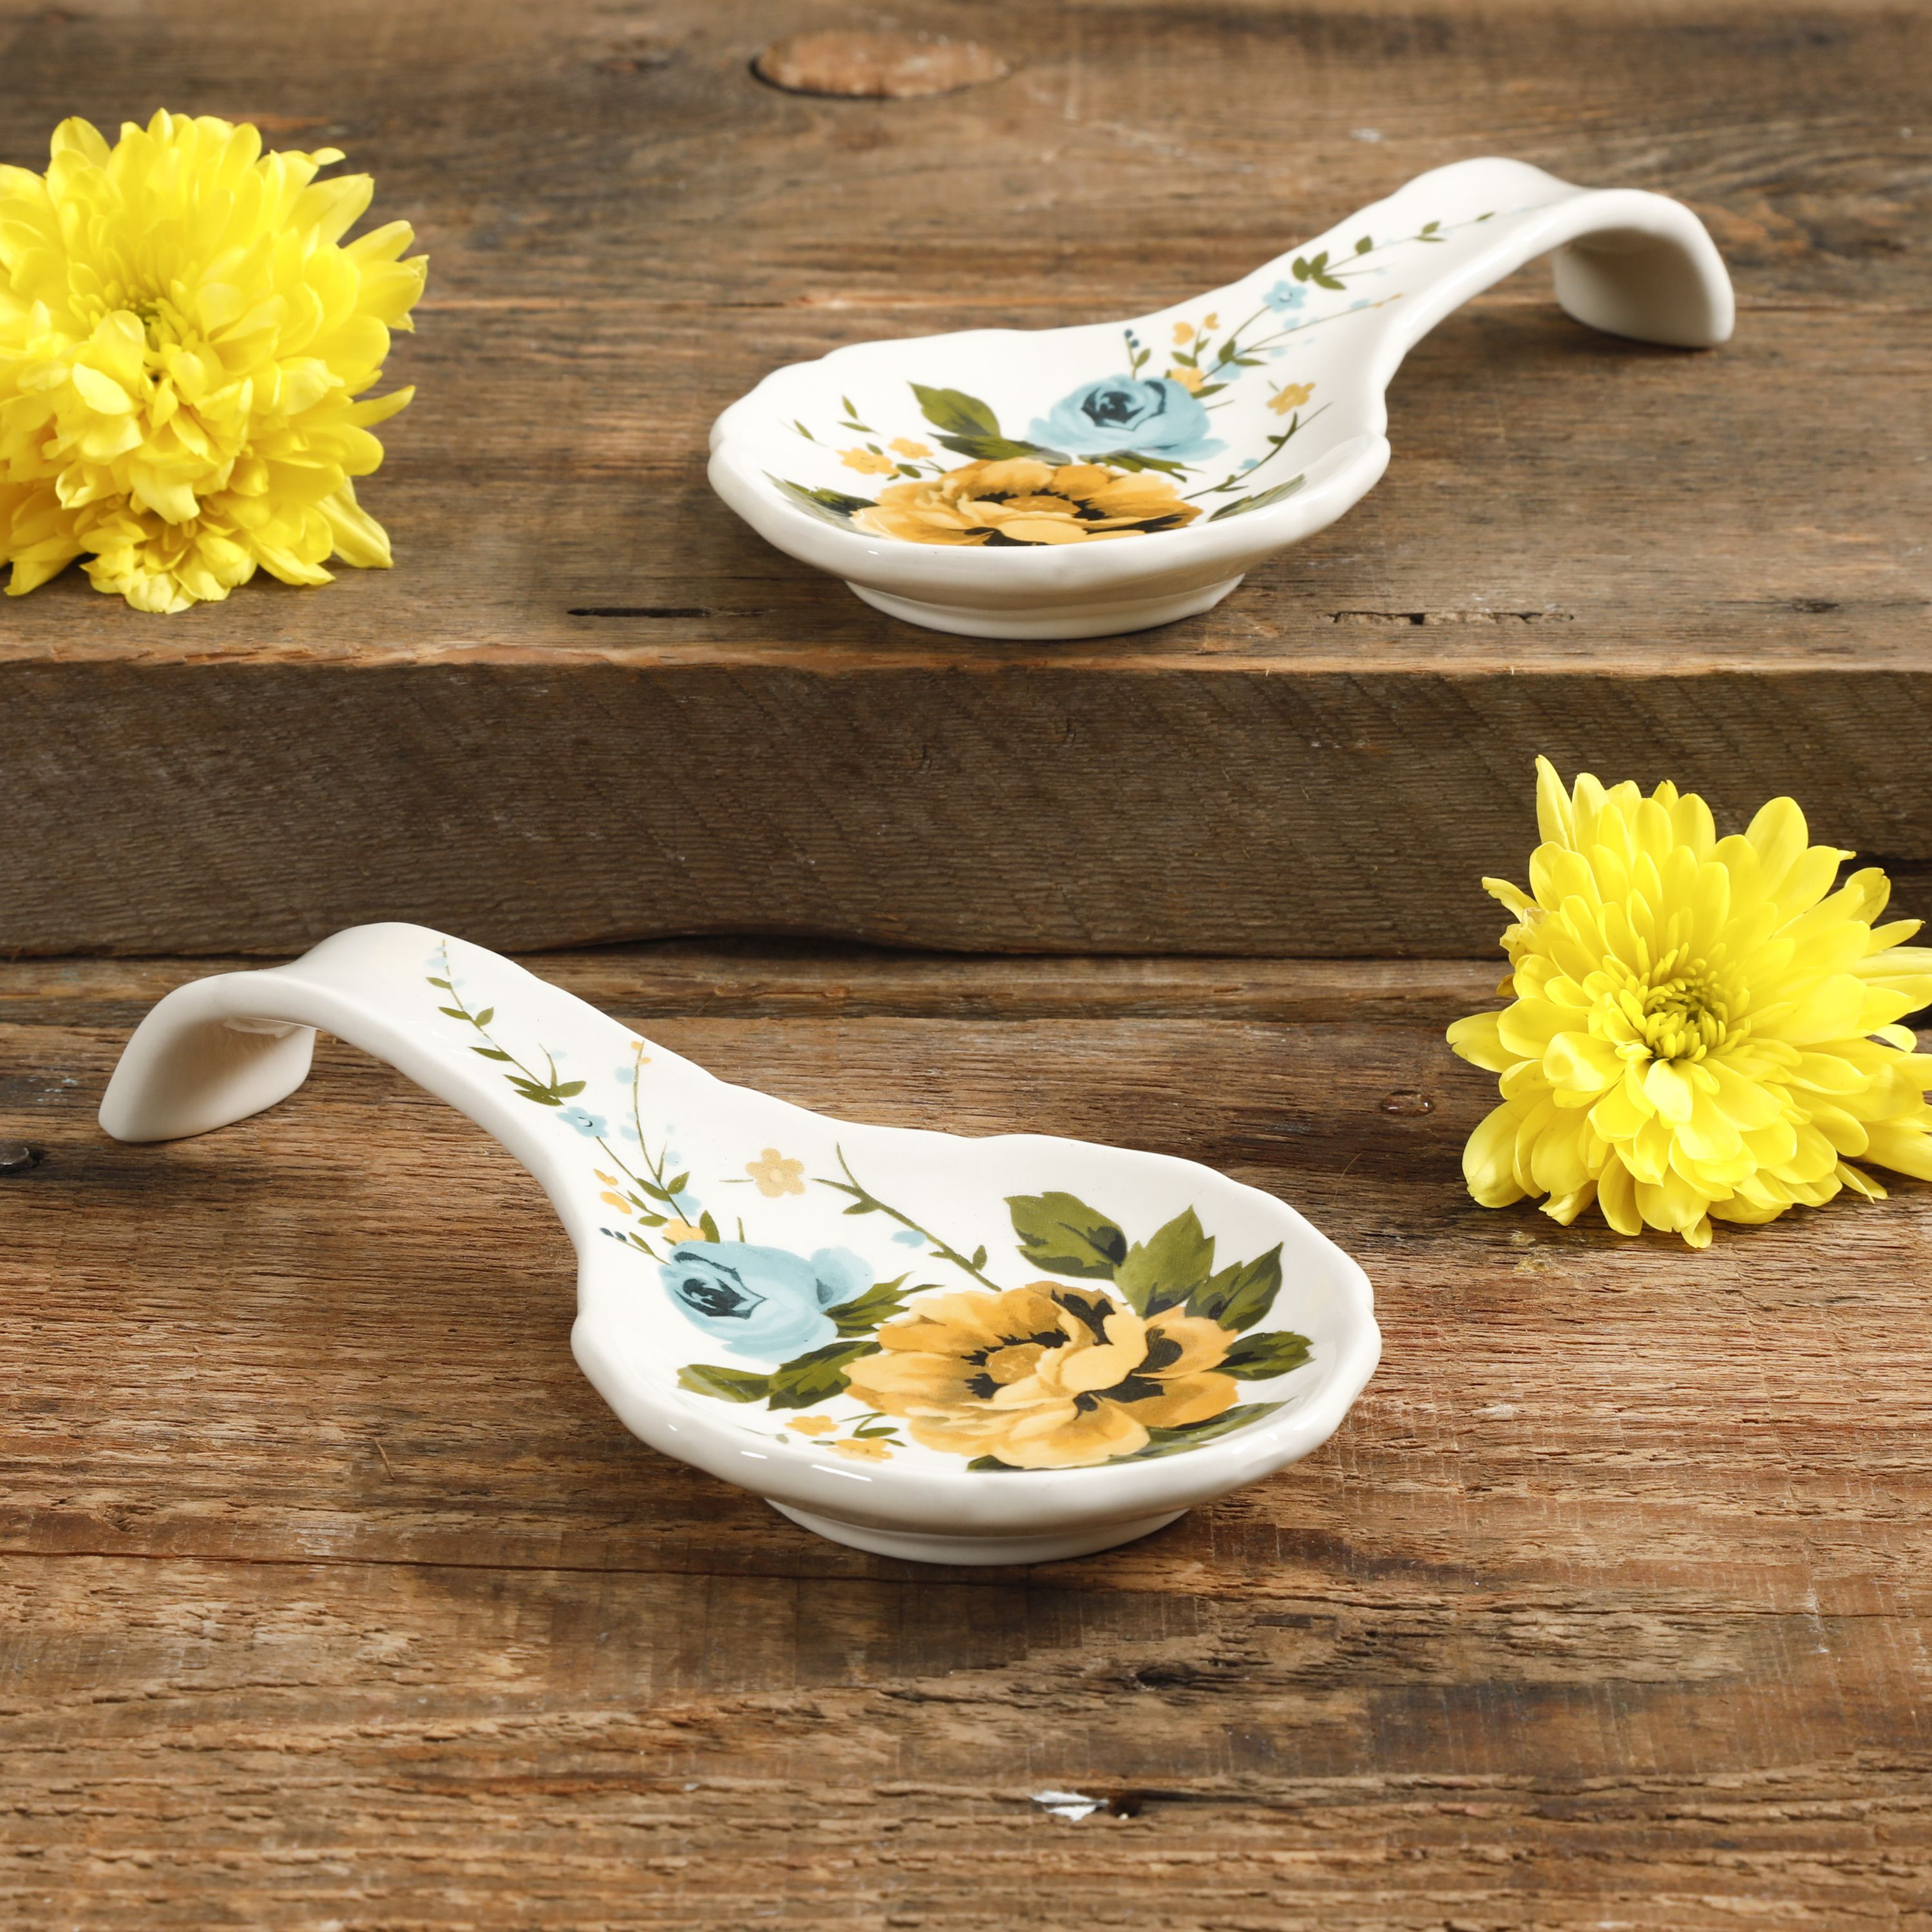 Home pioneer woman spoon rest soy candle making